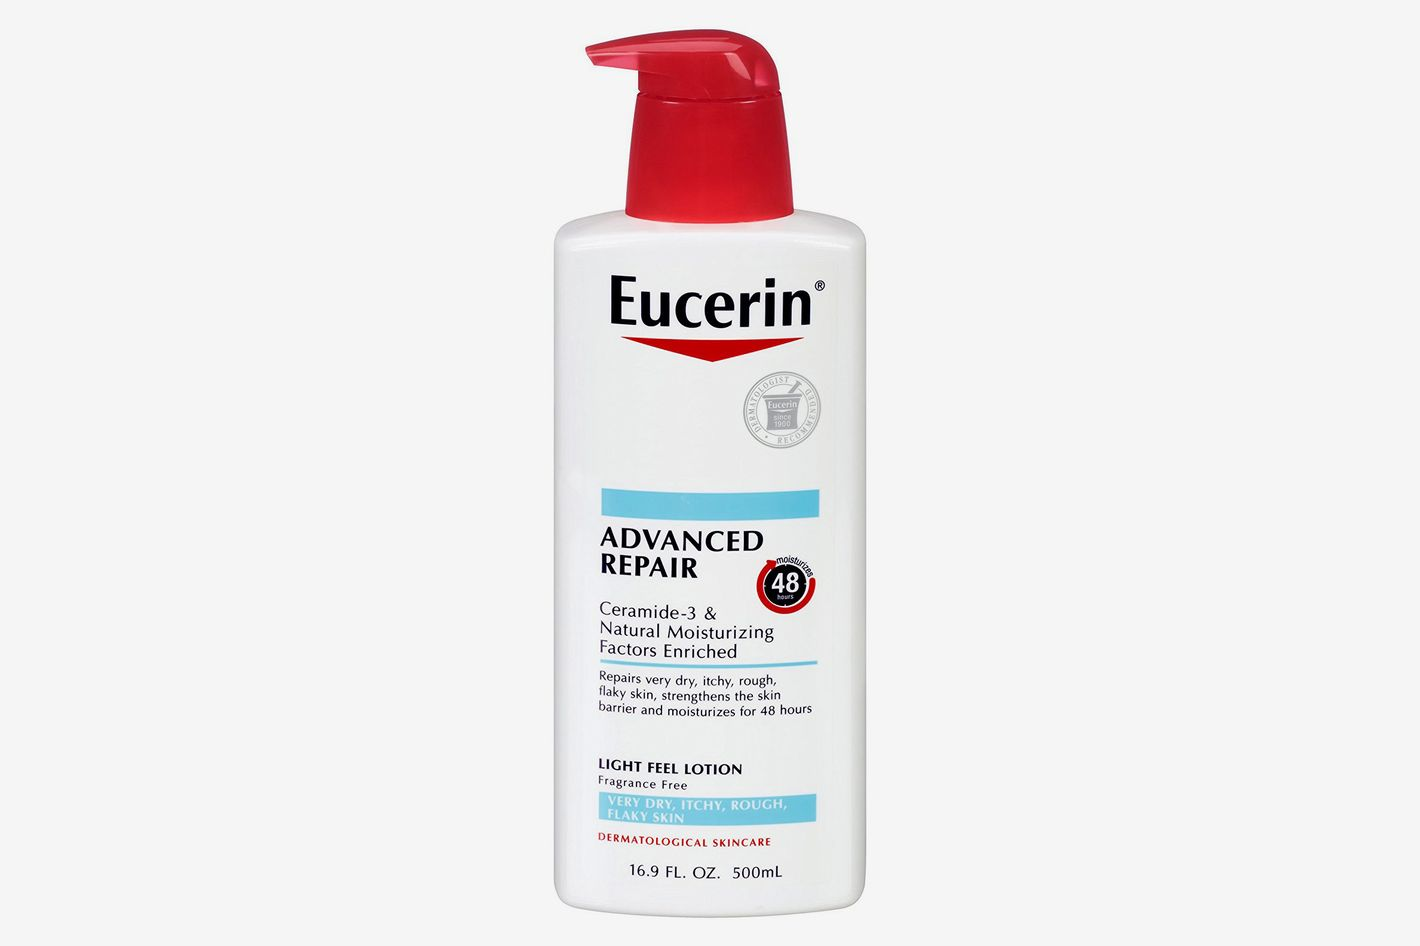 Eucerin Advanced Repair Dry Skin Lotion